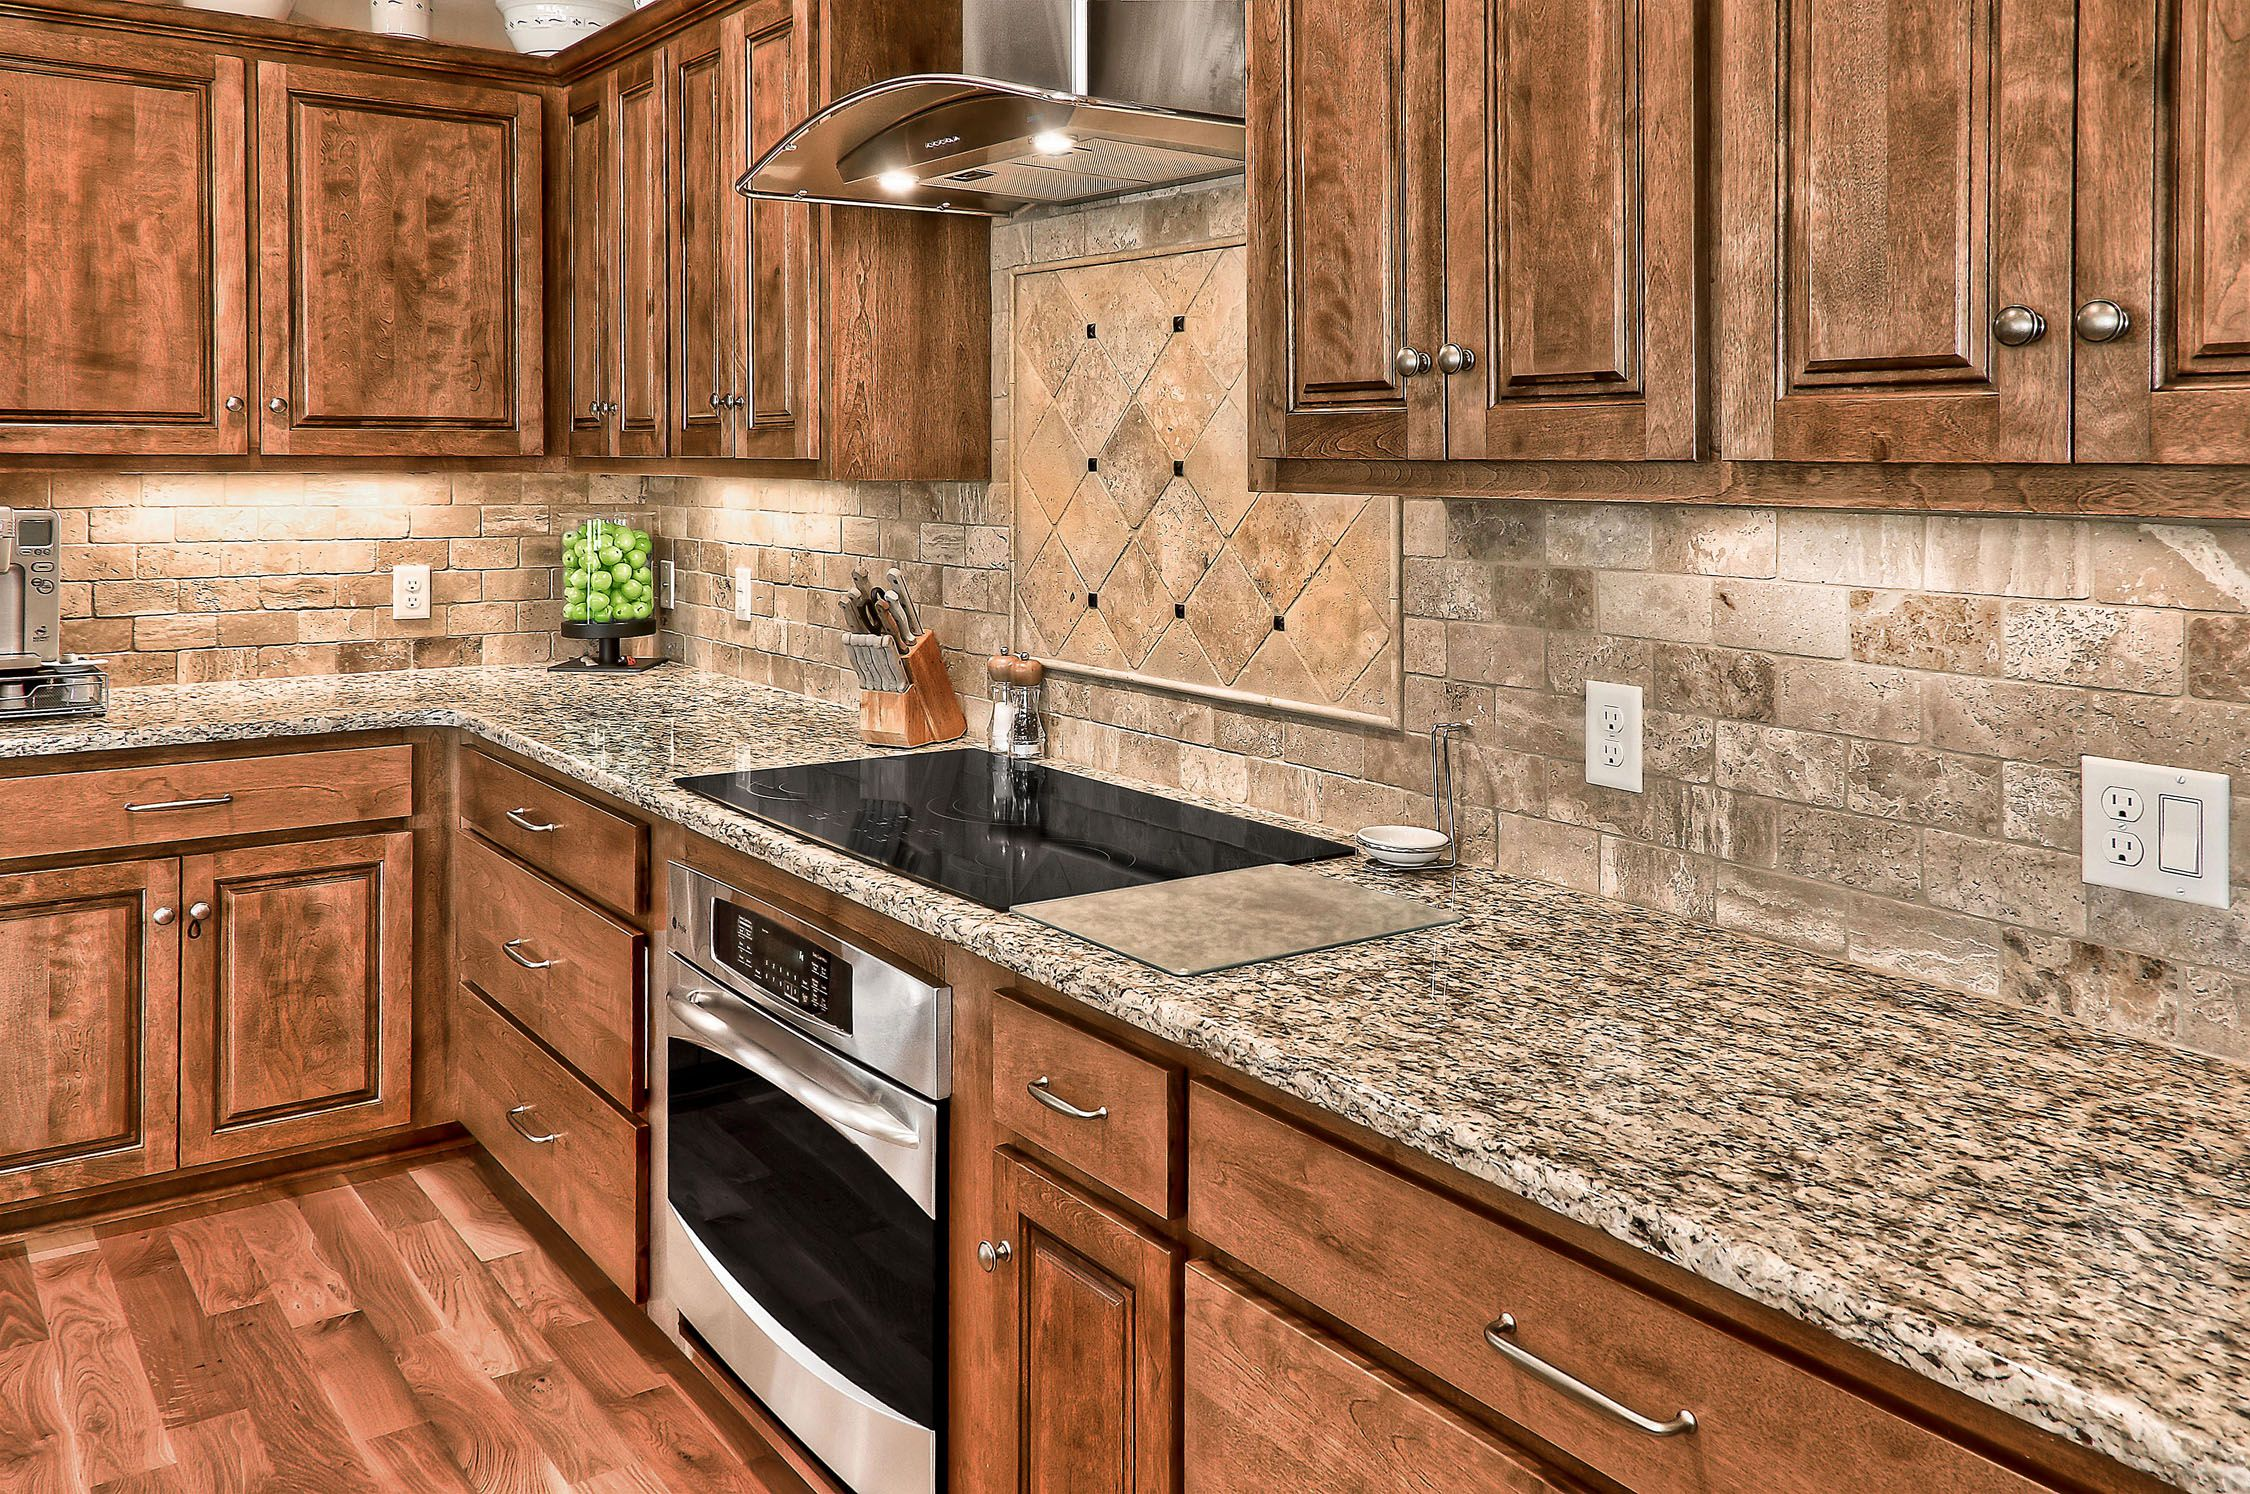 Kitchen by brentwood homes shadow lake omaha ne